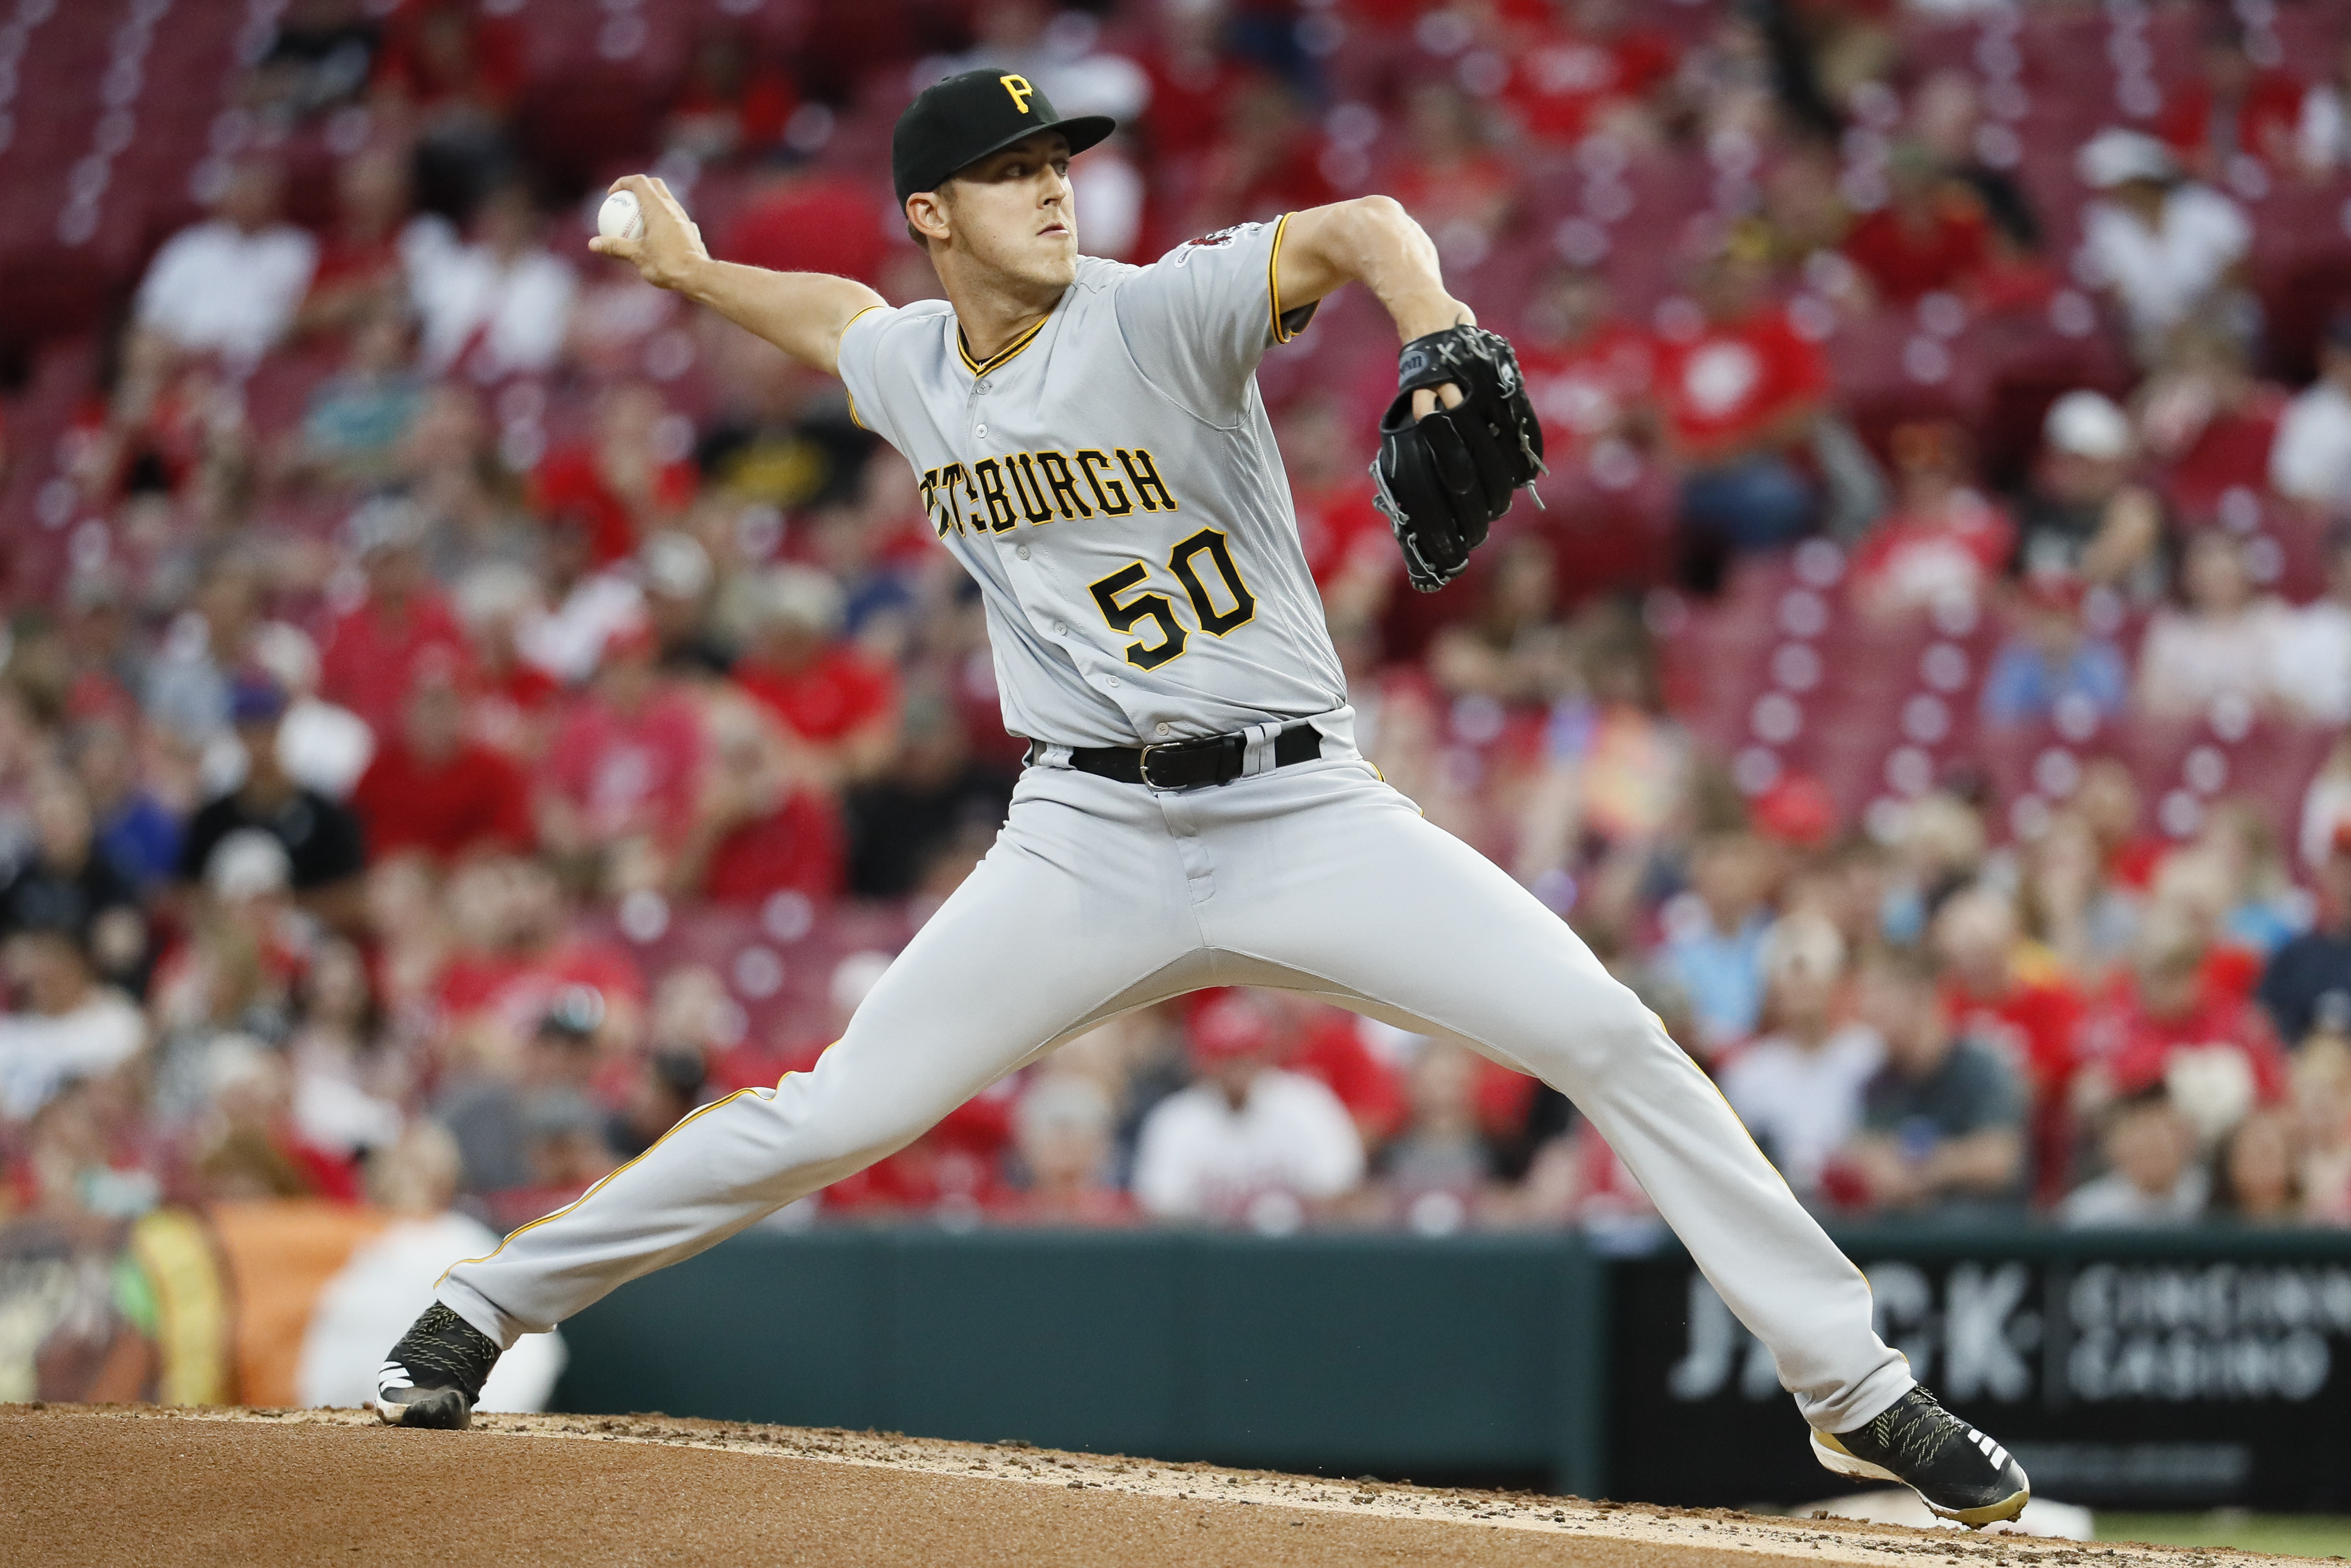 Pittsburgh Pirates starting pitcher Jameson Taillon throws during the first inning of a baseball game against the Cincinnati Reds, Tuesday, May 22, 2018, in Cincinnati. (AP Photo/John Minchillo)